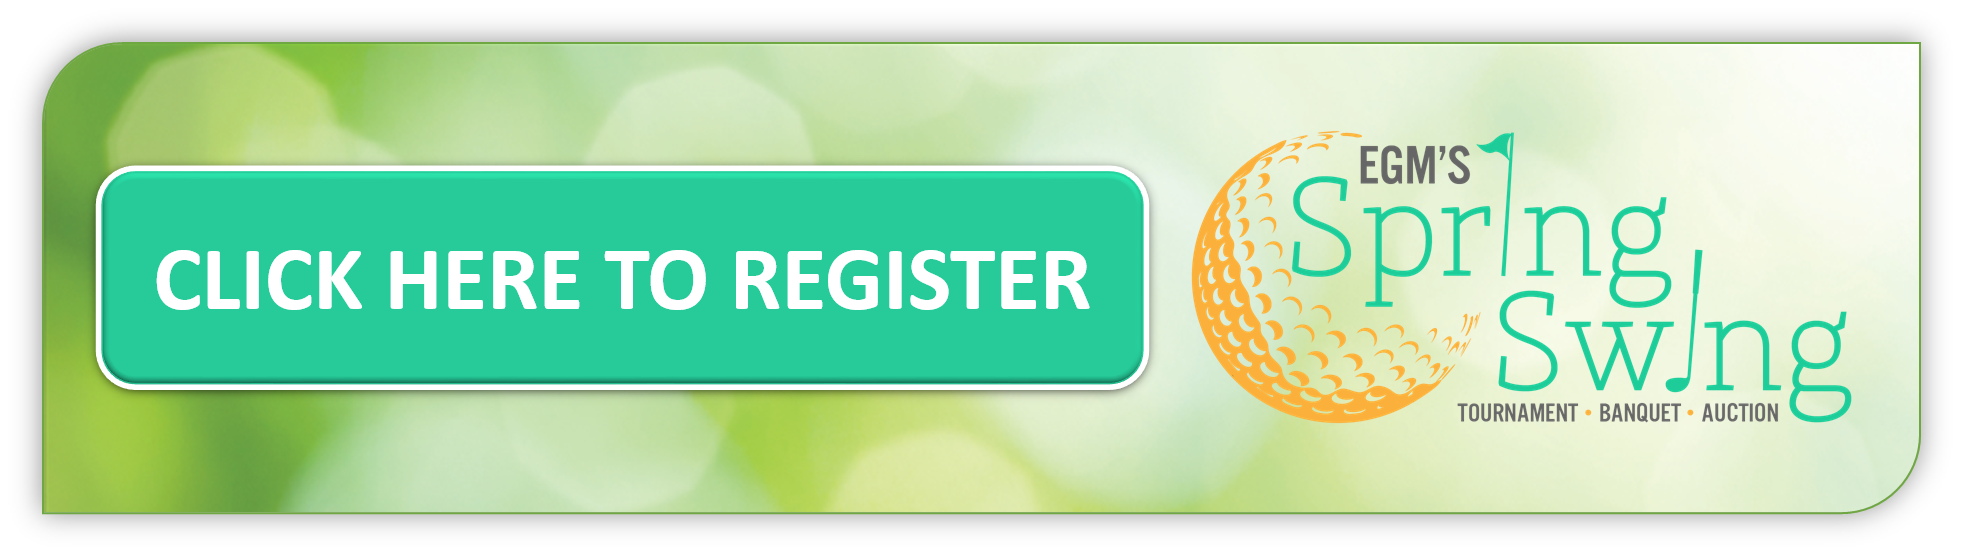 Spring Swing 2015 Registration Banner